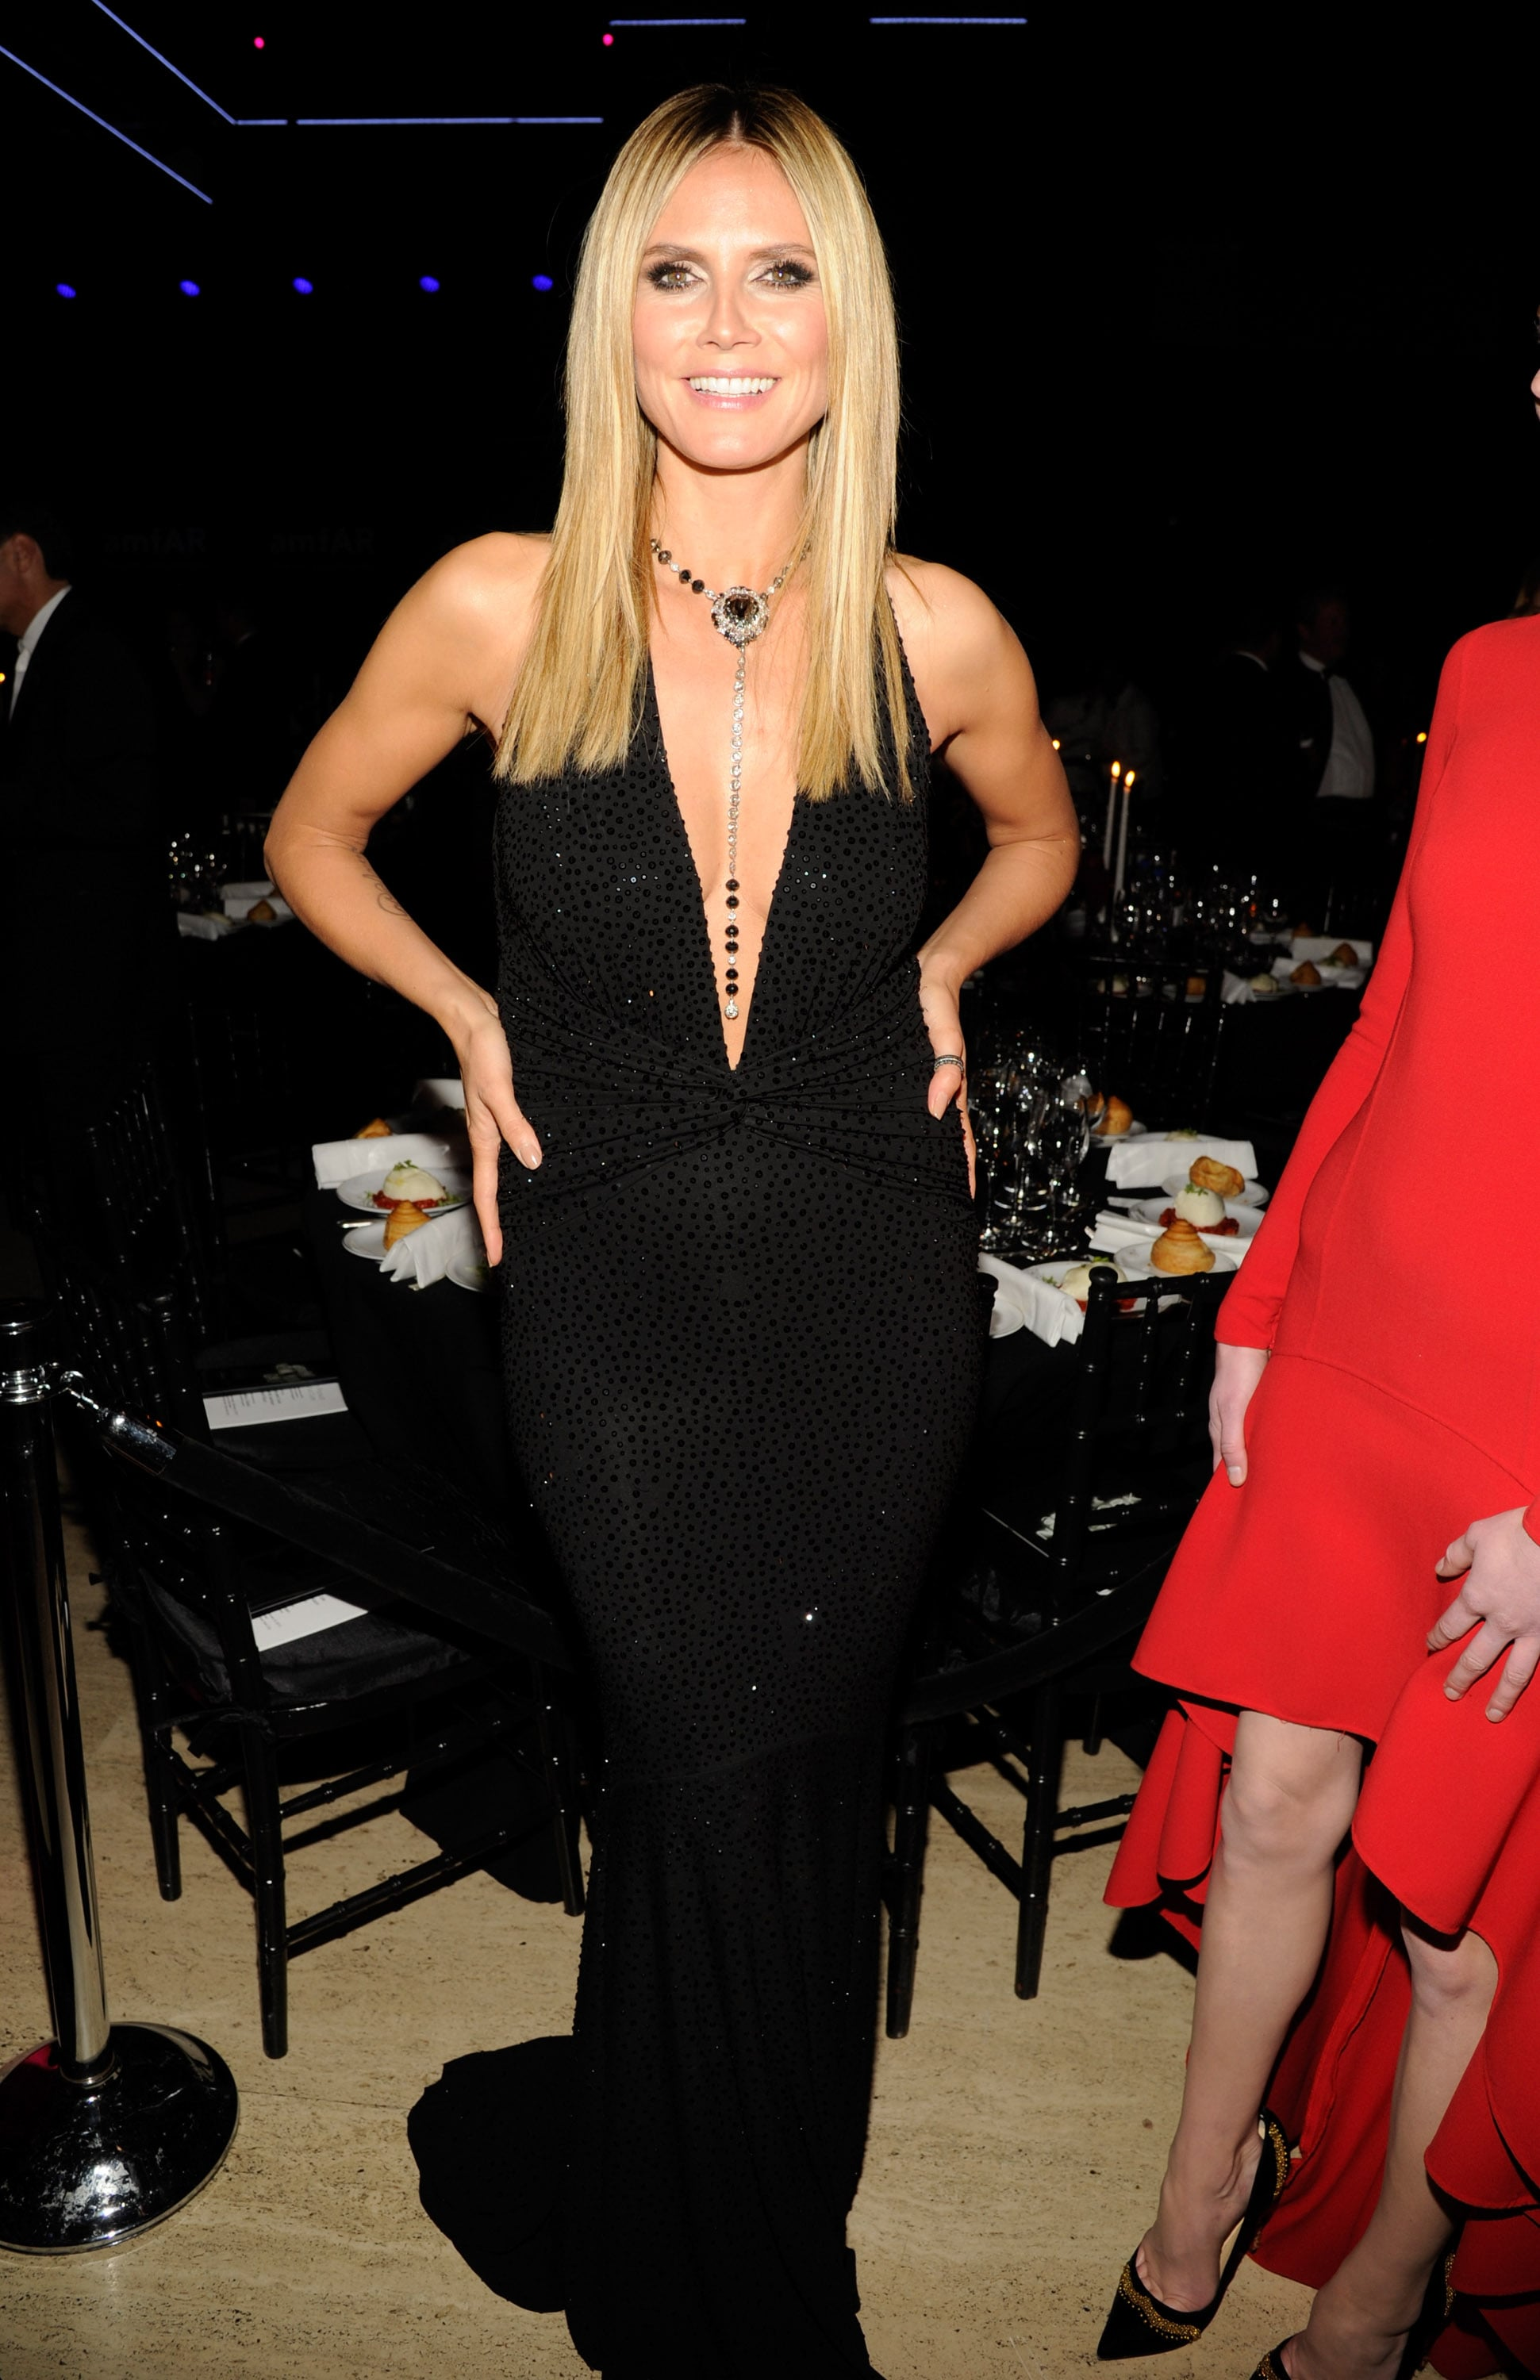 Heidi Klum wore a black sequined Michael Kors dress with a dangerously low neckline.